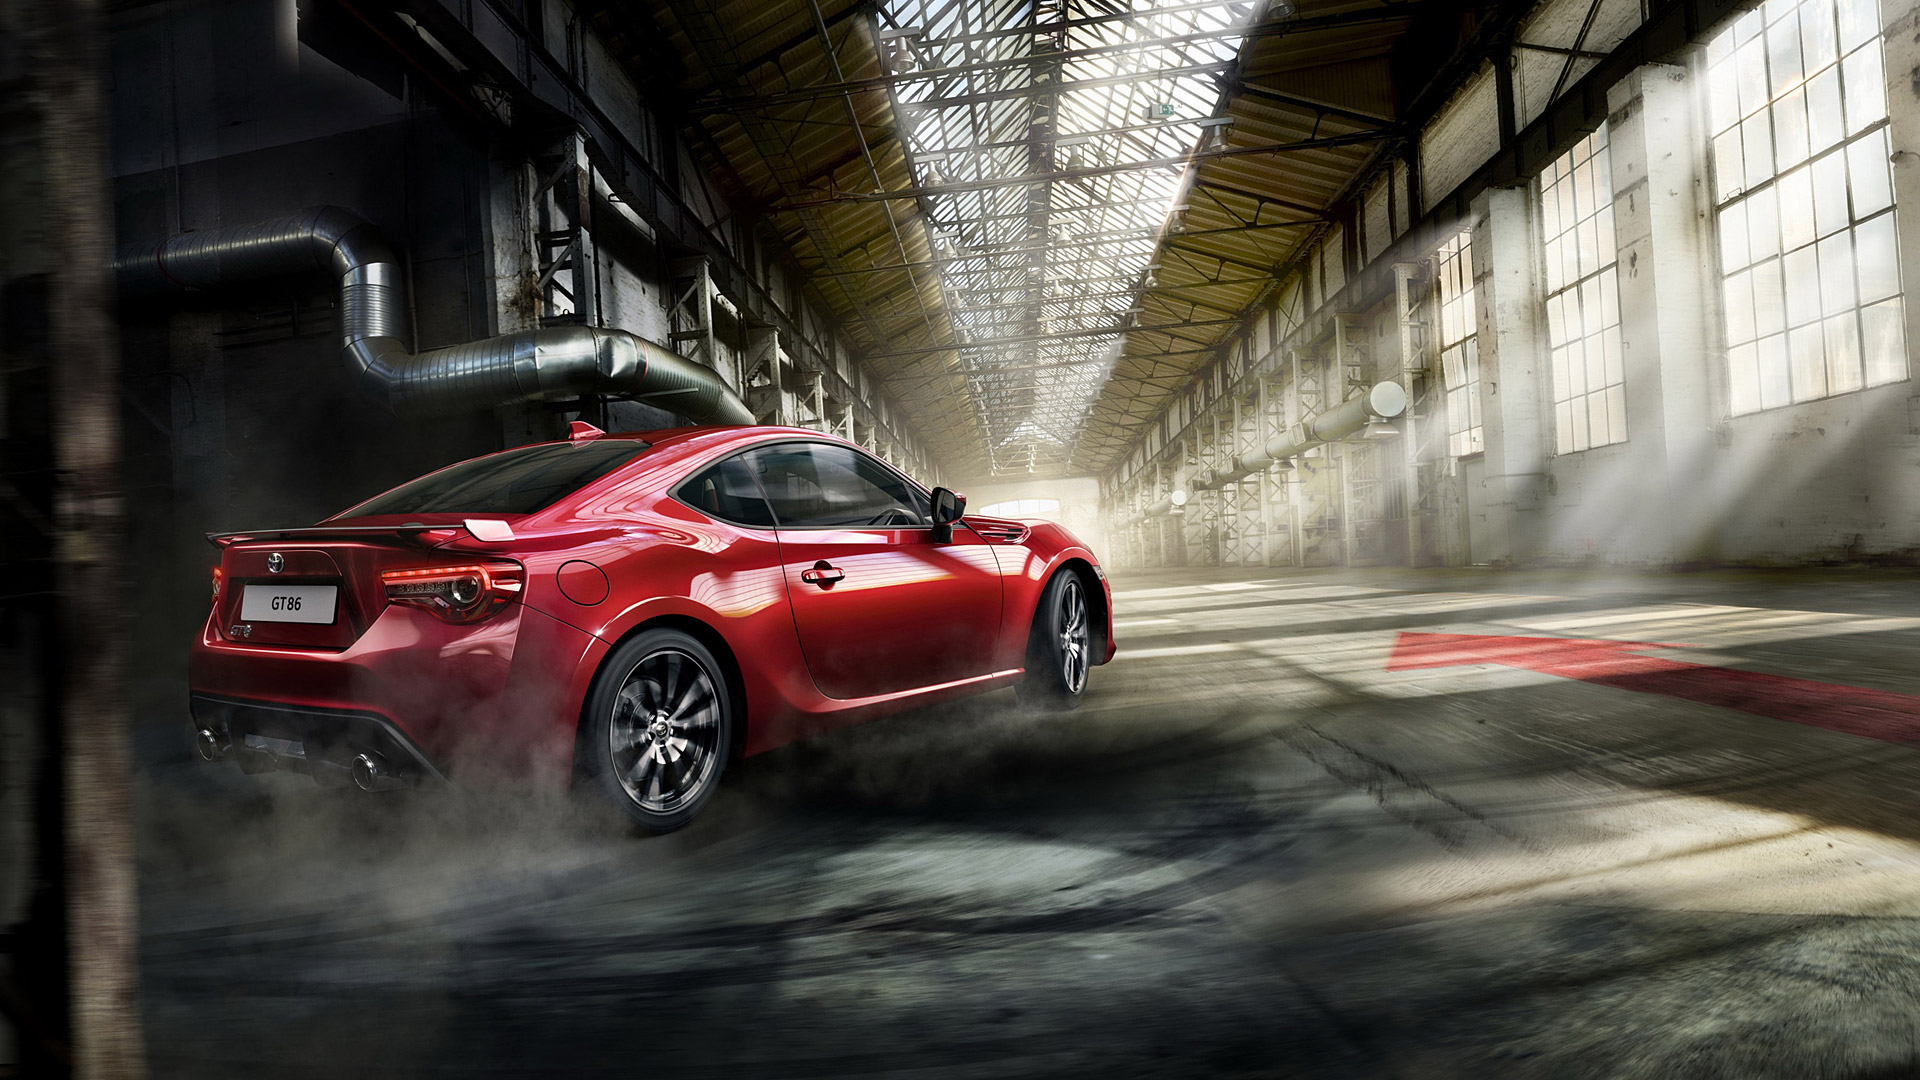 Toyota 86 Wallpapers and Background Images   stmednet 1920x1080